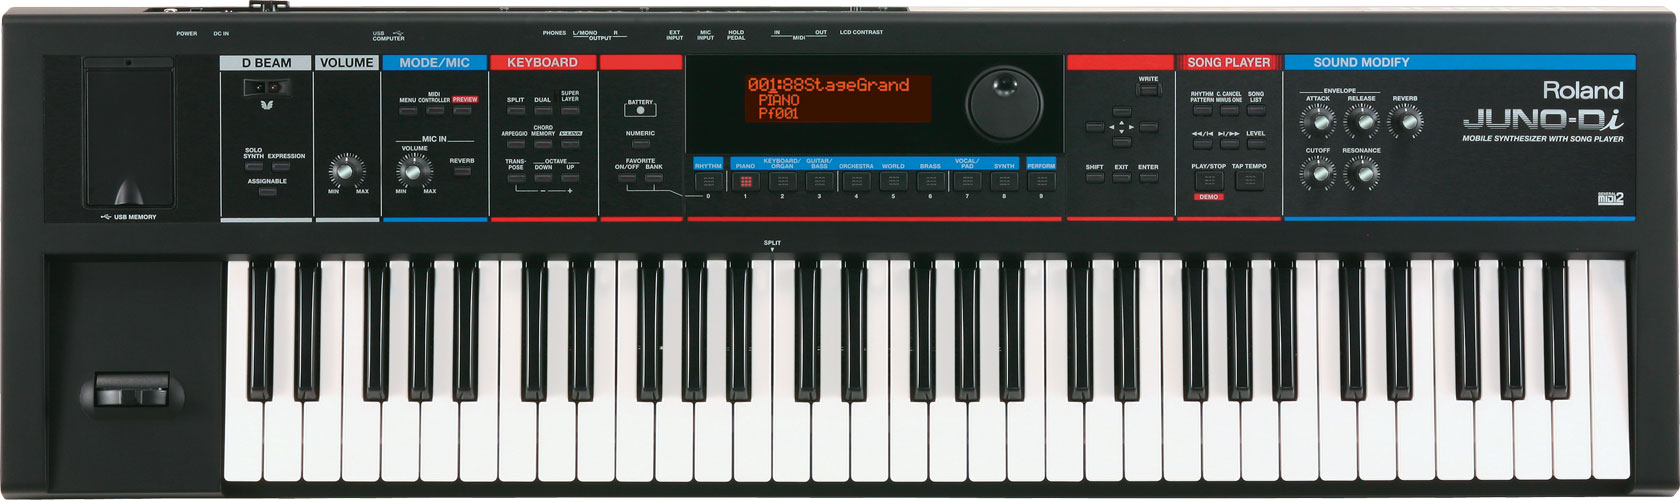 roland juno di mobile synthesizer with song player rh roland com roland juno ds manual list roland juno d service manual